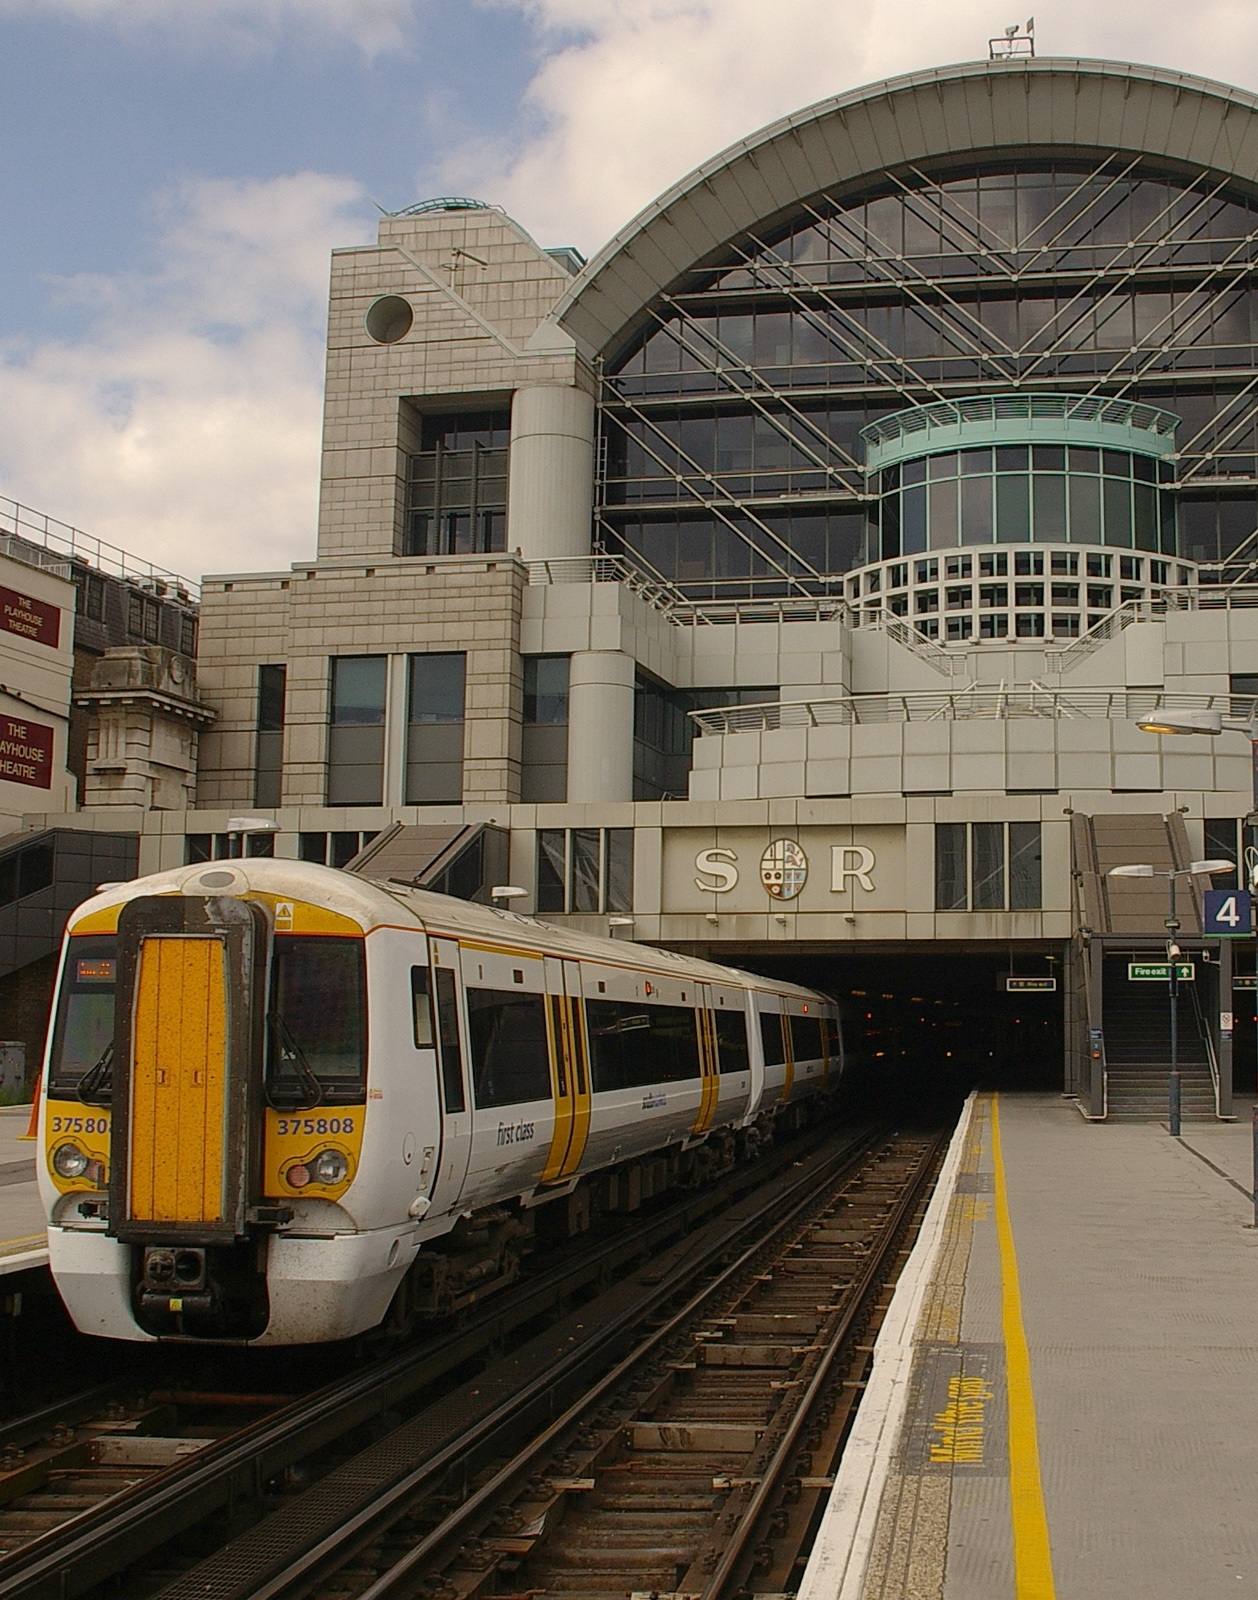 Charing Cross station MMB 05 375808 The 20 Worst Tube Stations In London